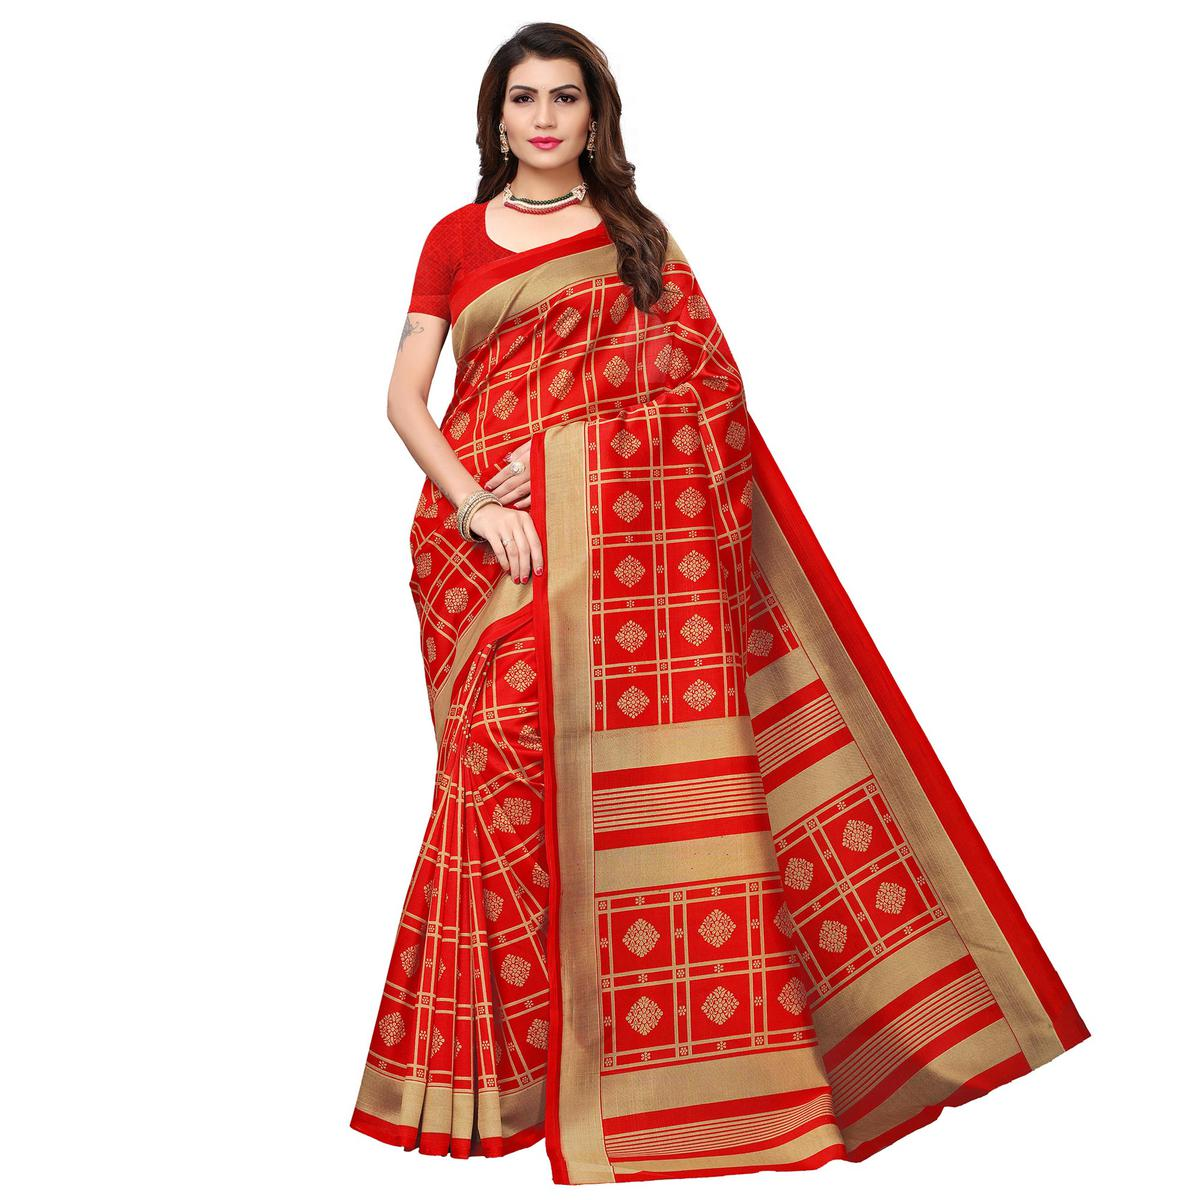 Adorable Red Colored Casual Wear Printed Art Silk Saree